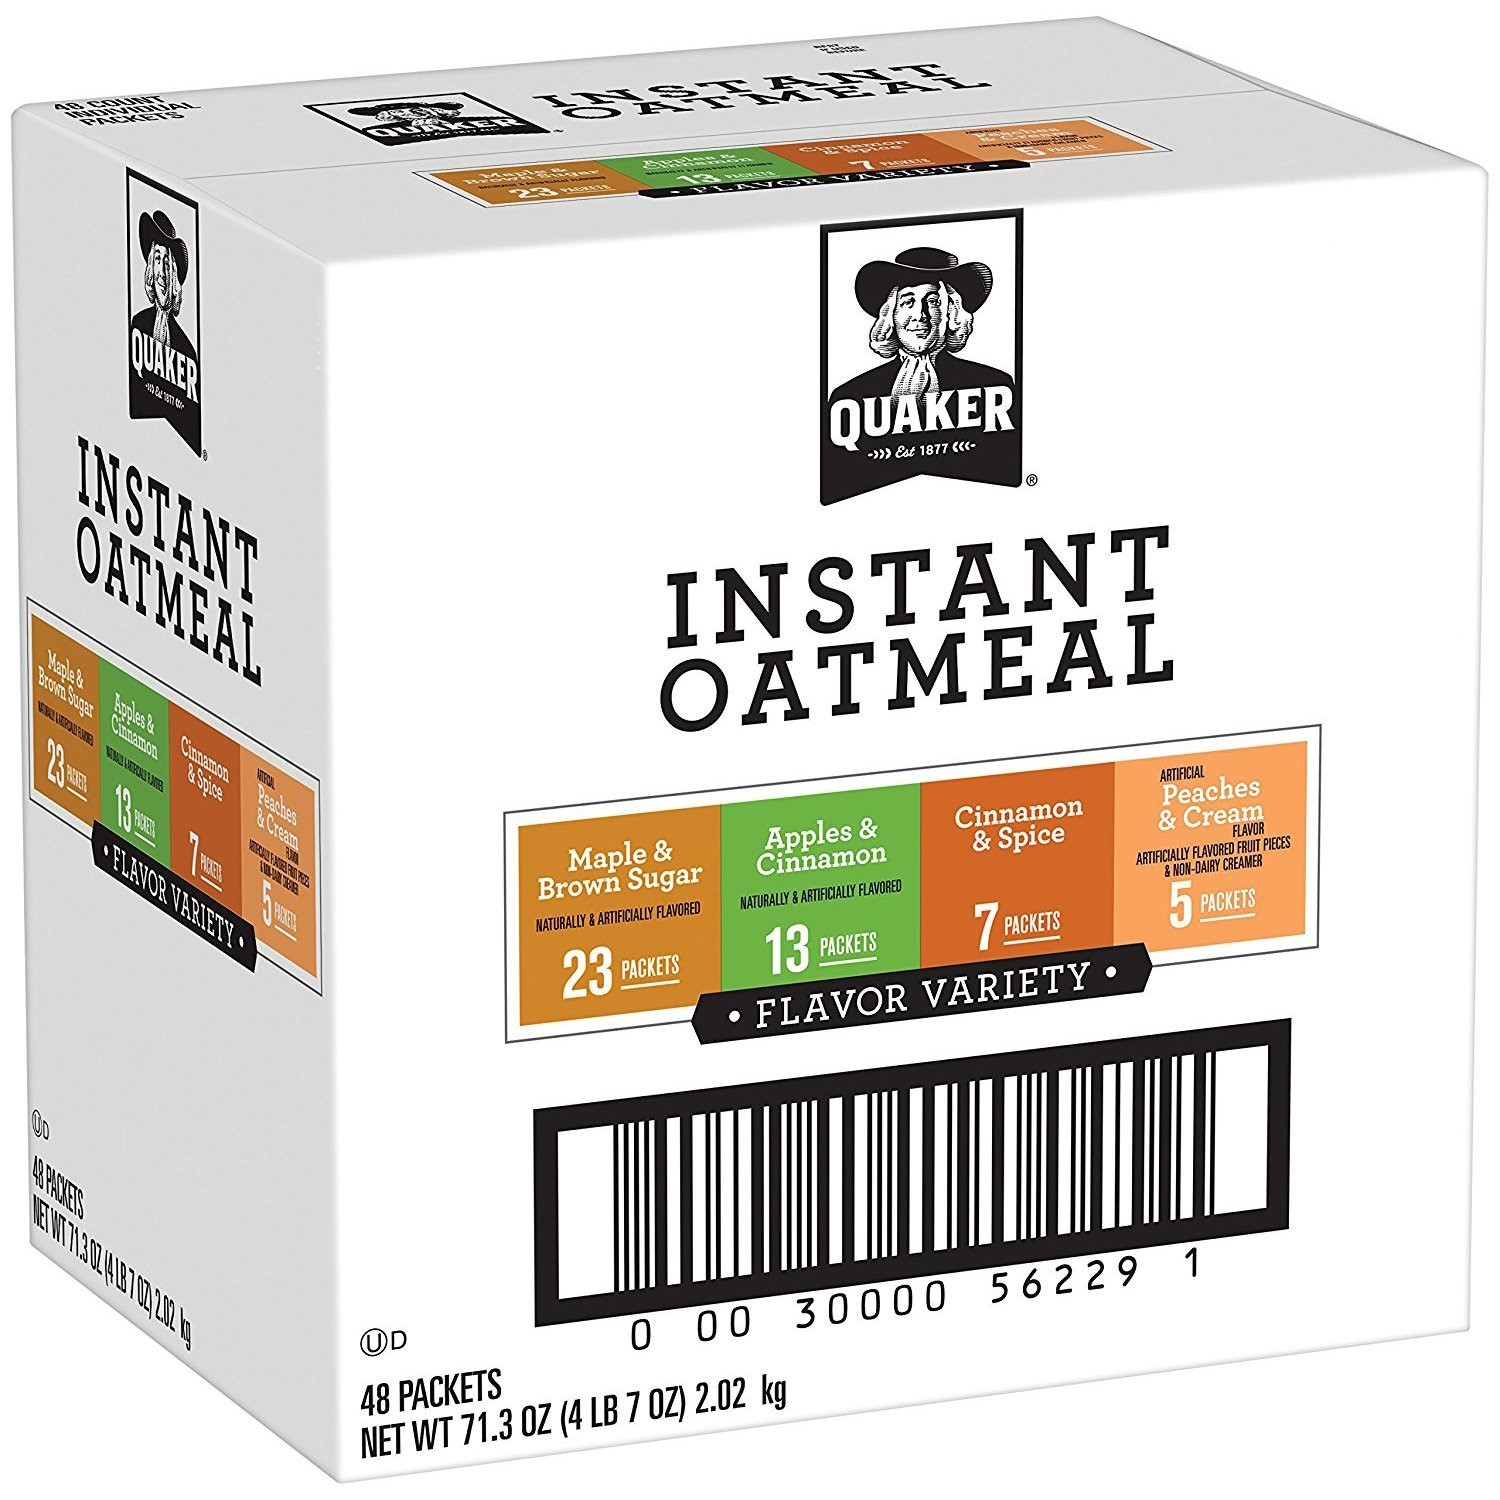 Quaker Instant Oatmeal, Flavor Variety Pack, 48 Packets